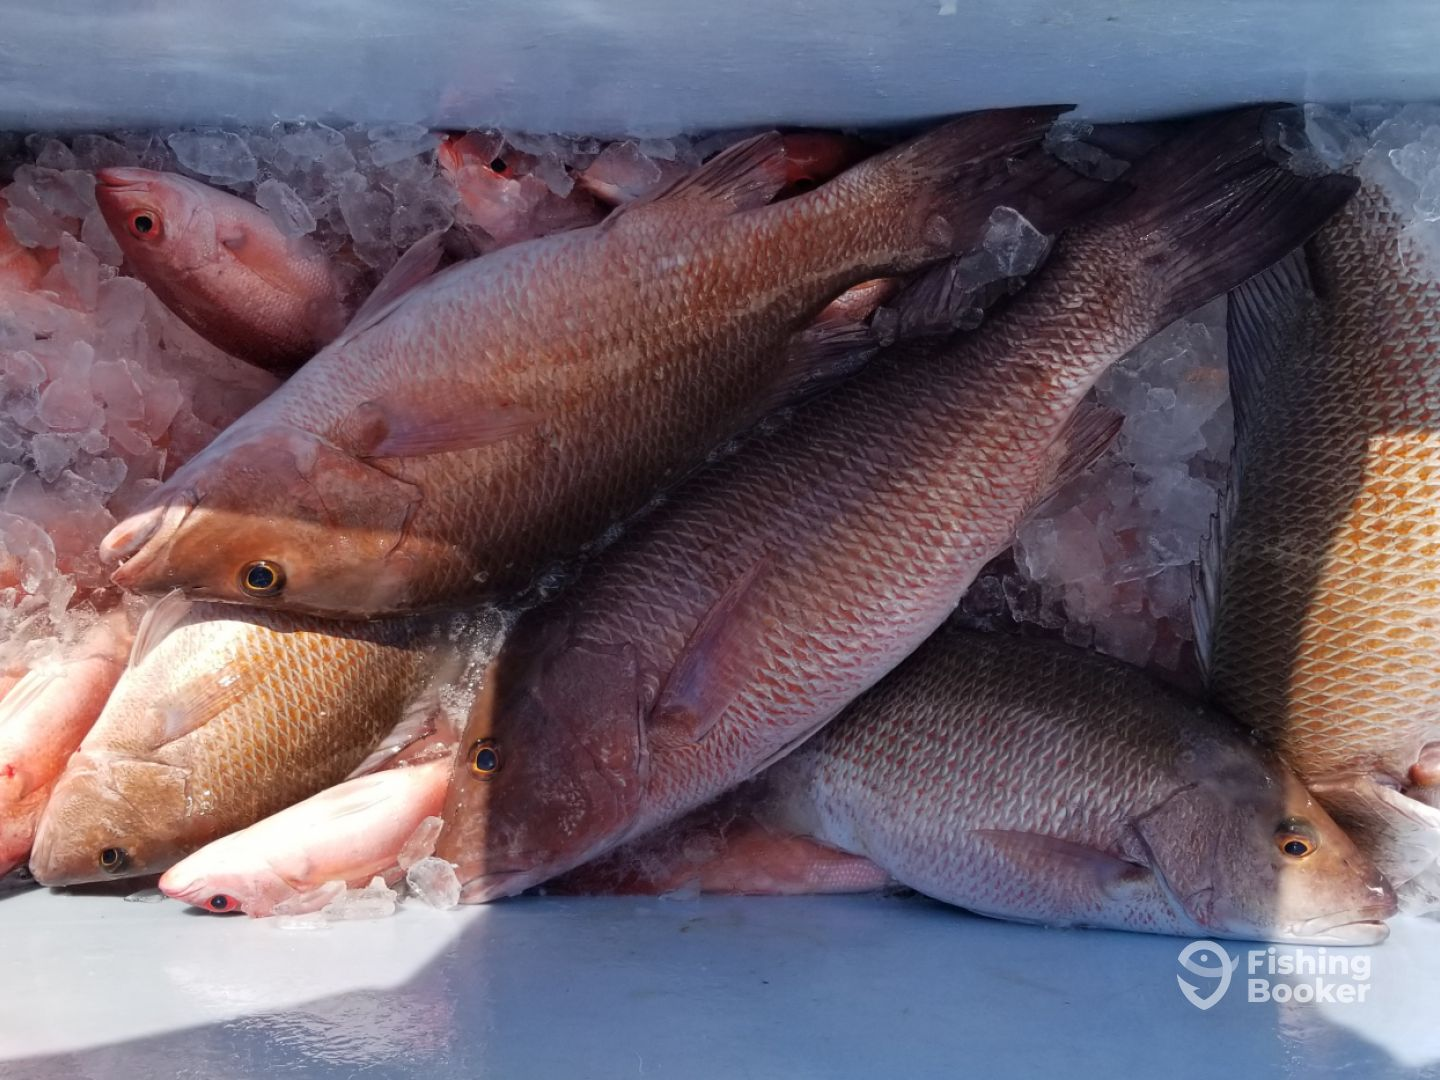 Black snapper and vermillion snapper